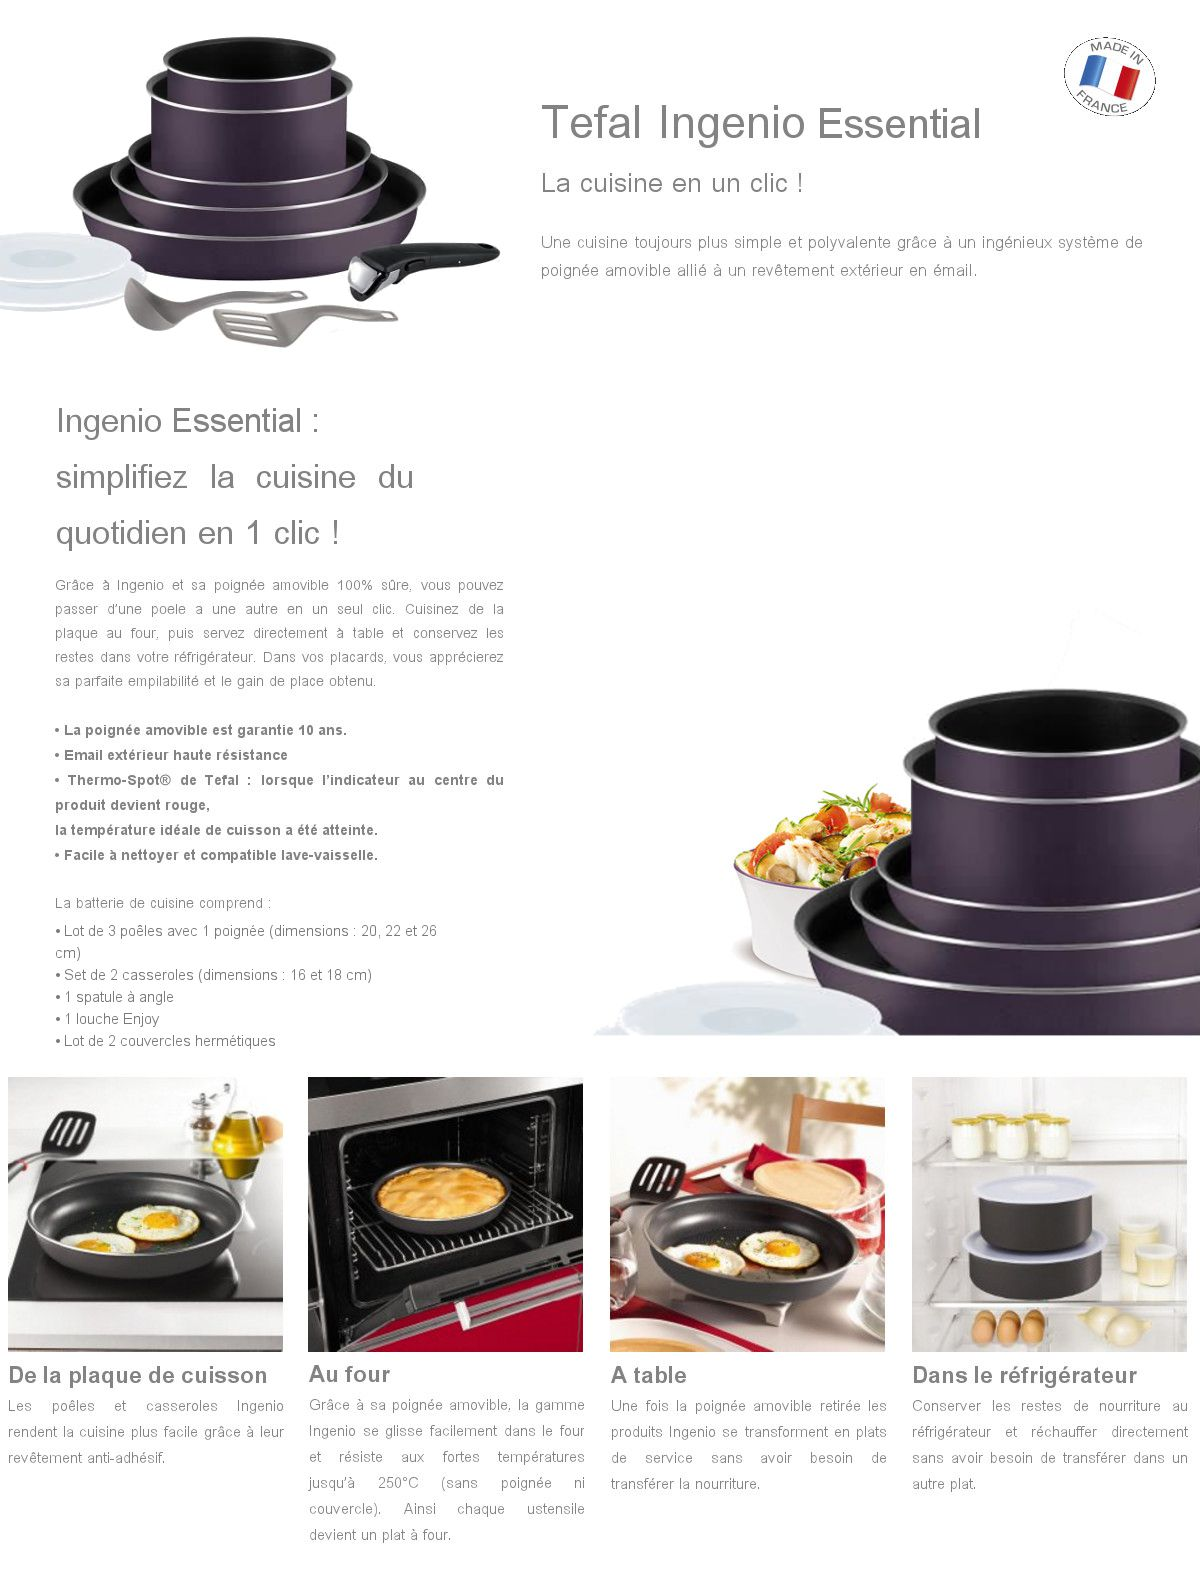 tefal ingenio essential batterie de cuisine 10 pi ces l2029802 16 18 20 22 26cm tous feux sauf. Black Bedroom Furniture Sets. Home Design Ideas